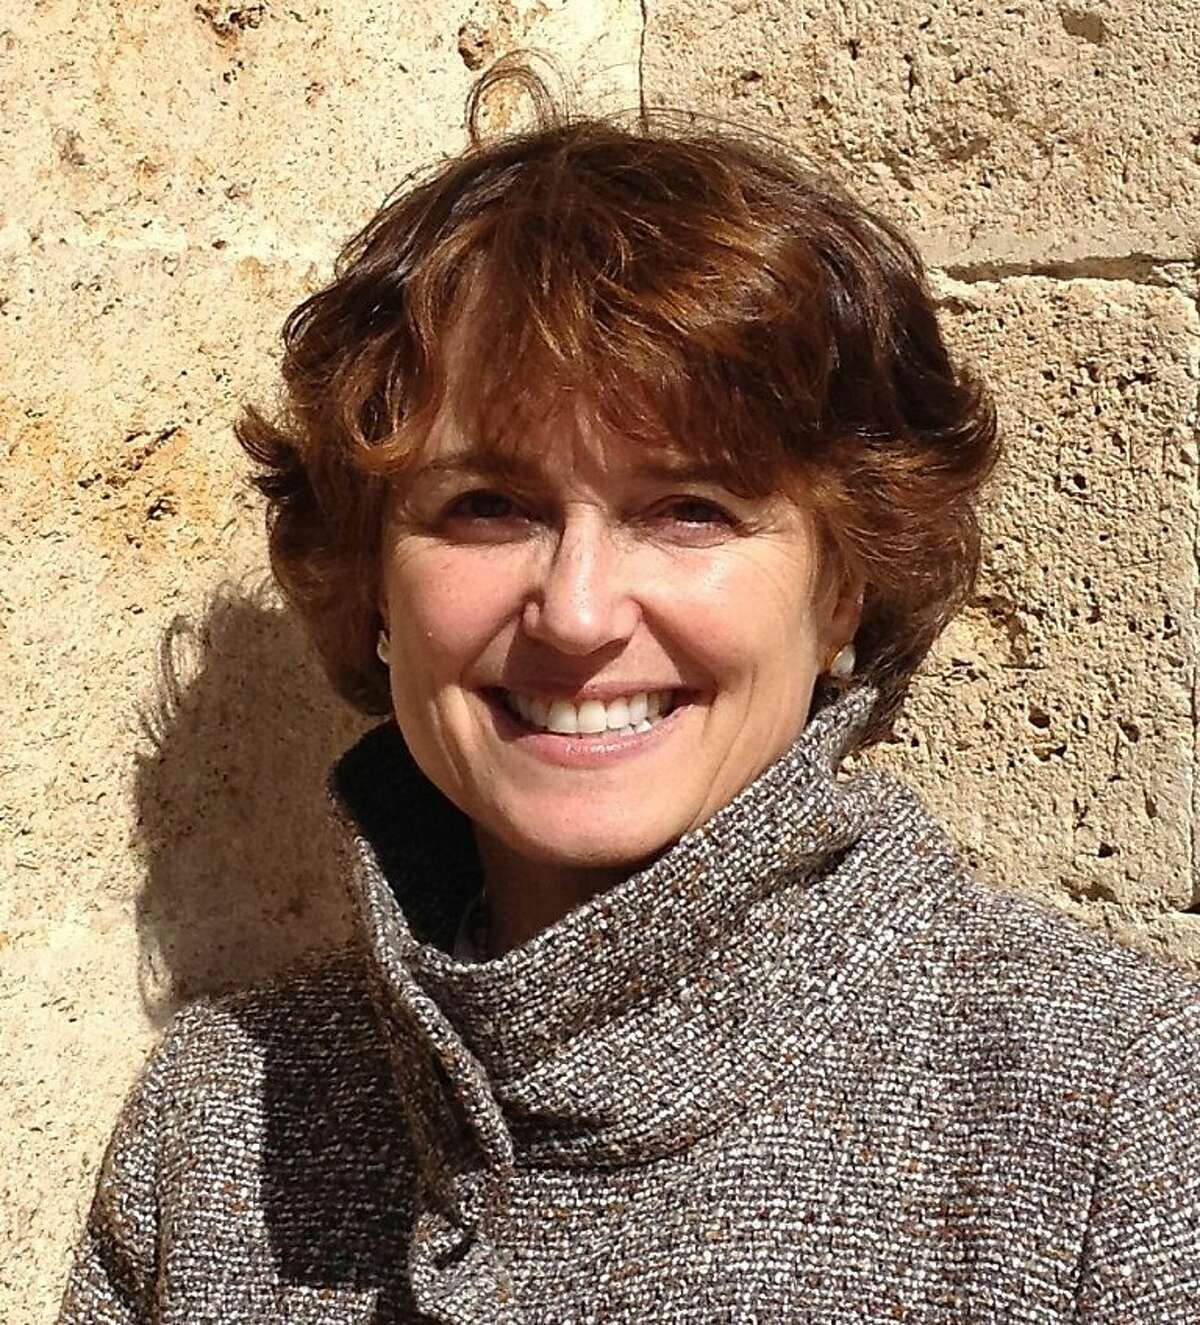 Author Lynn Stegner in a recent photo for Catching Up